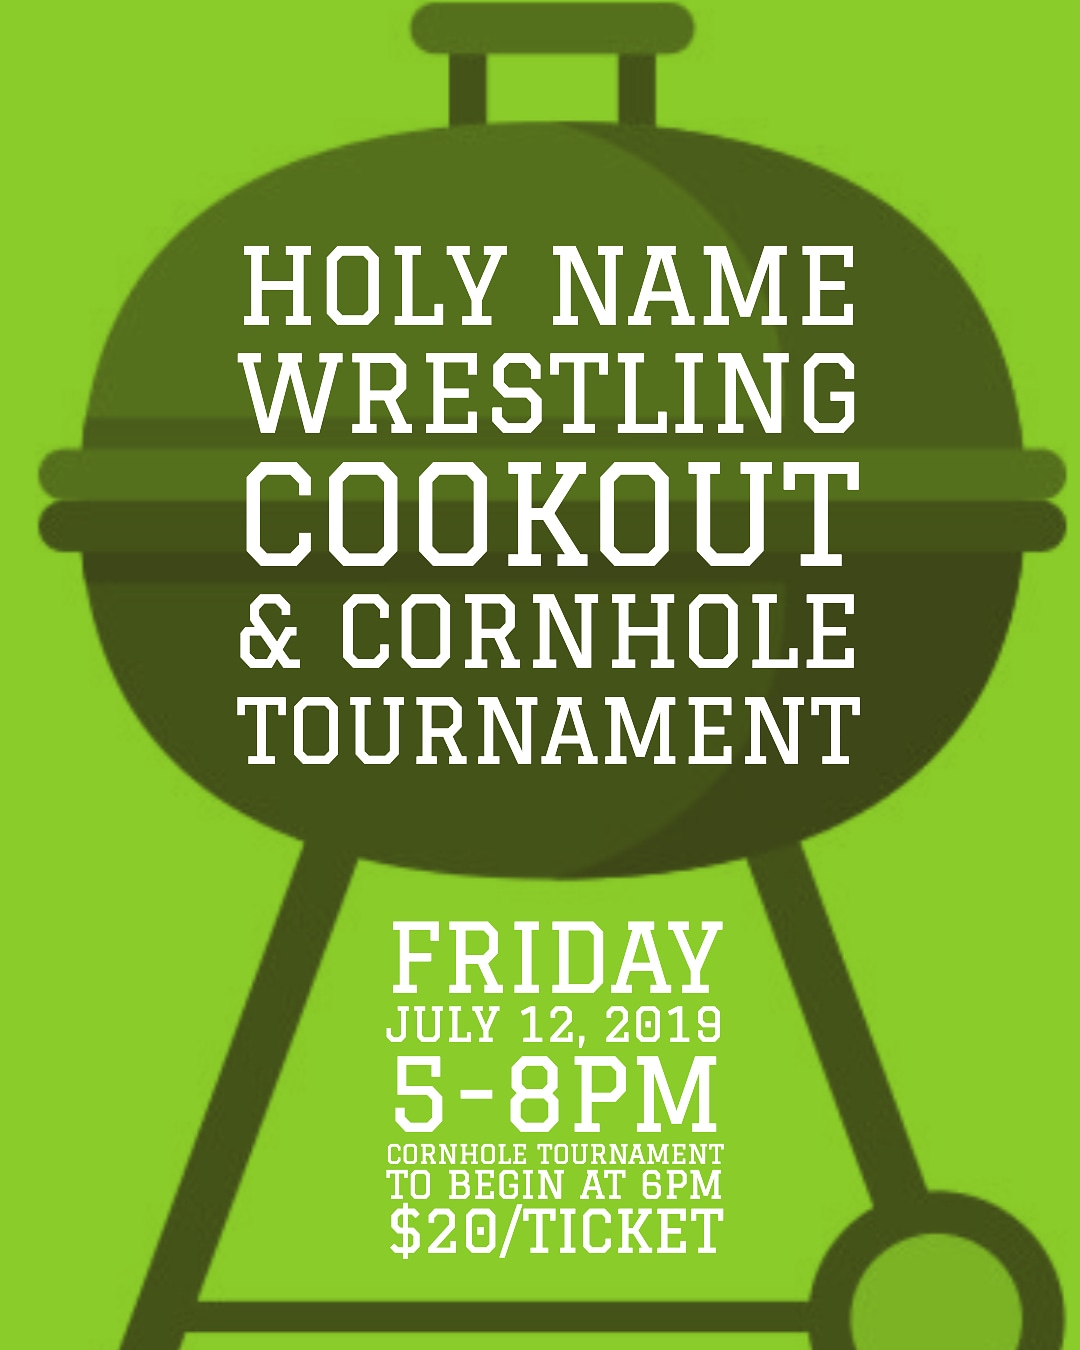 Wrestling Cookout and Cornhole Tournament Set for July 12